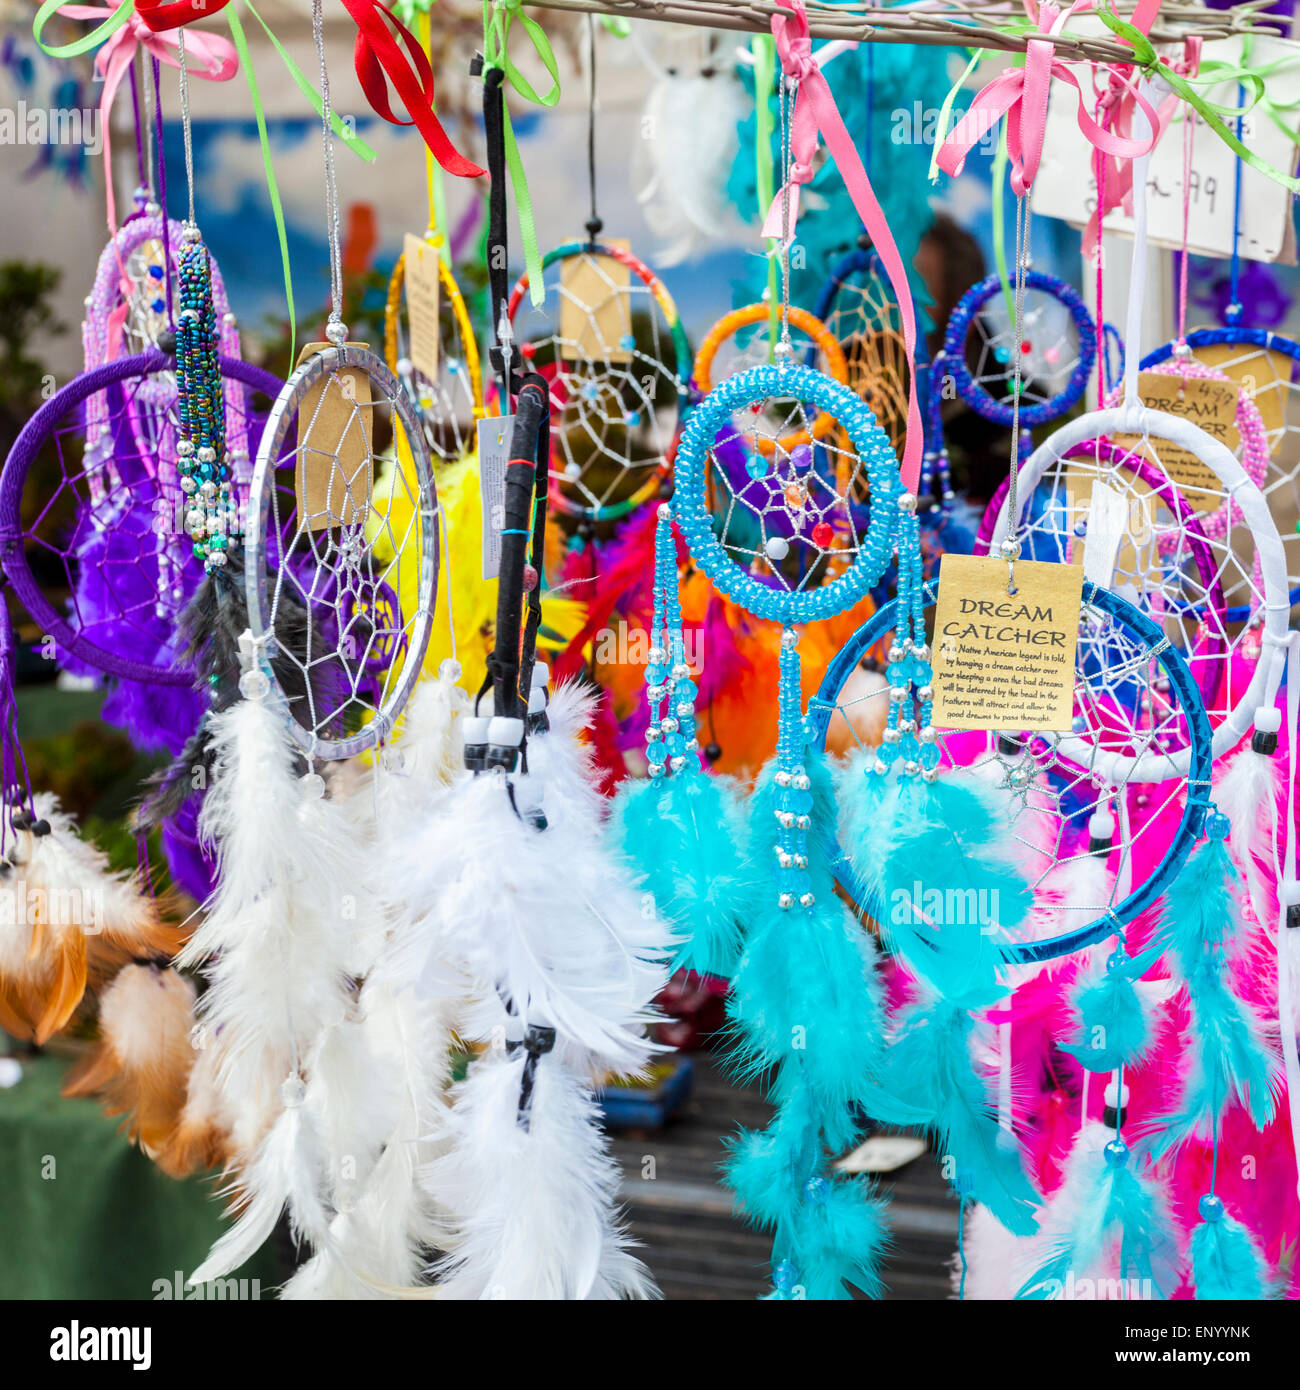 What Stores Sell Dream Catchers Dream catchers for sale on a market stall Nottingham England UK 16